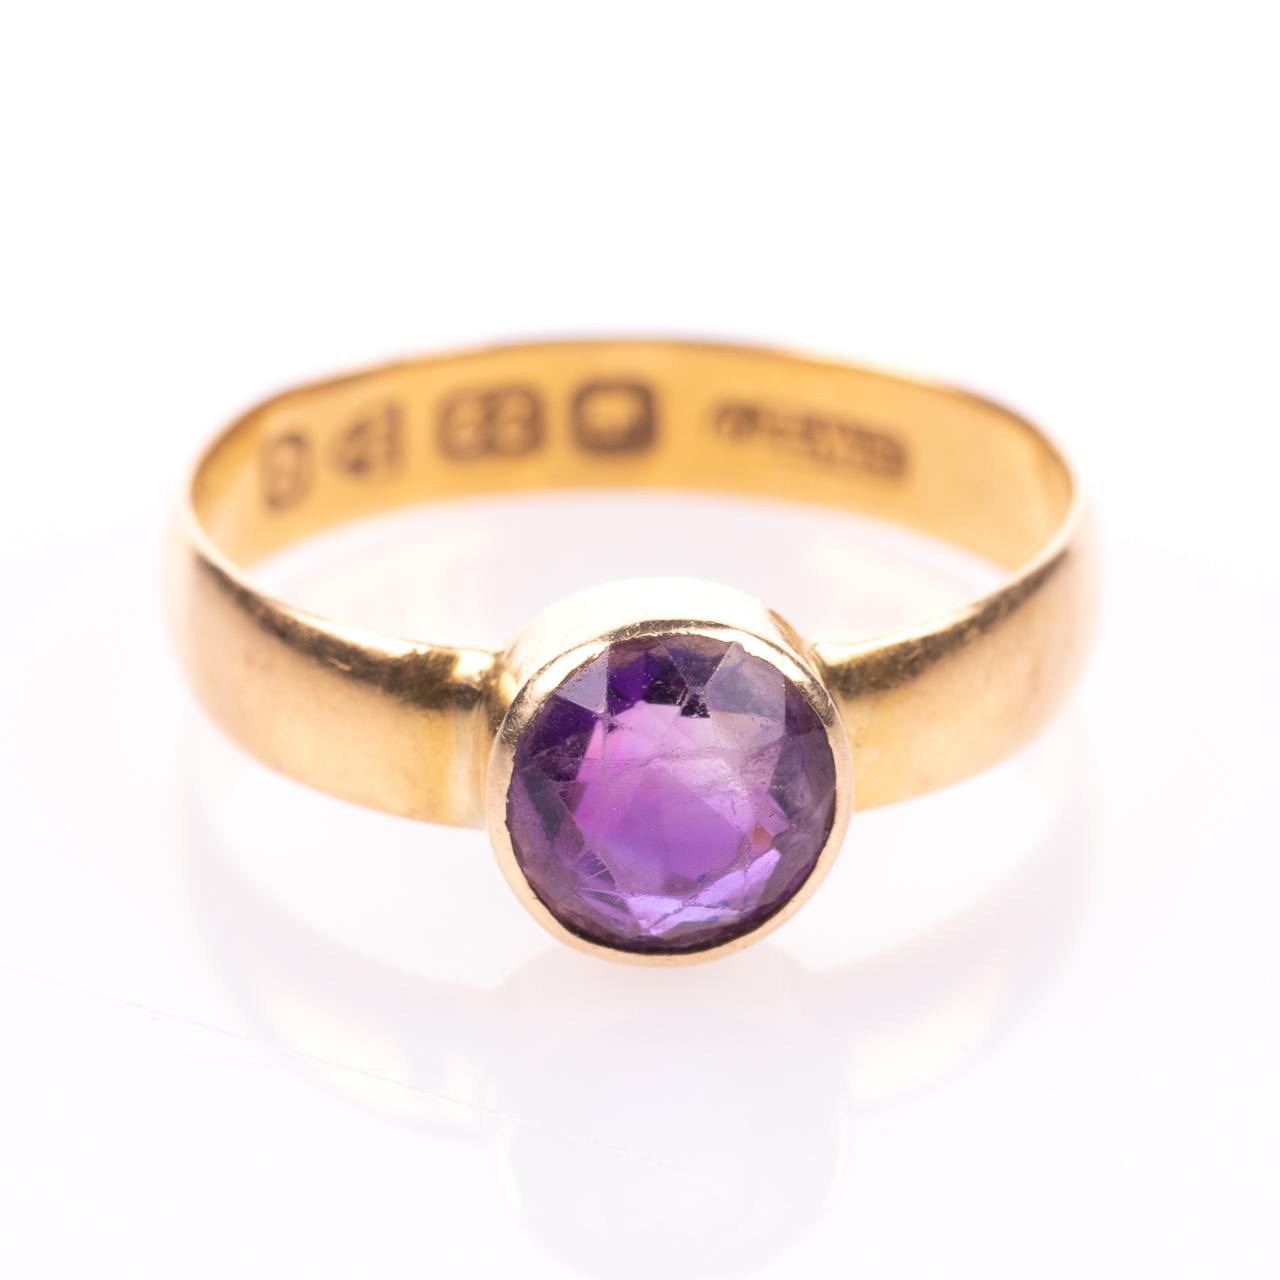 22ct Gold Victorian Amethyst Ring Chester 1899, Howard & Walsh - Image 3 of 7